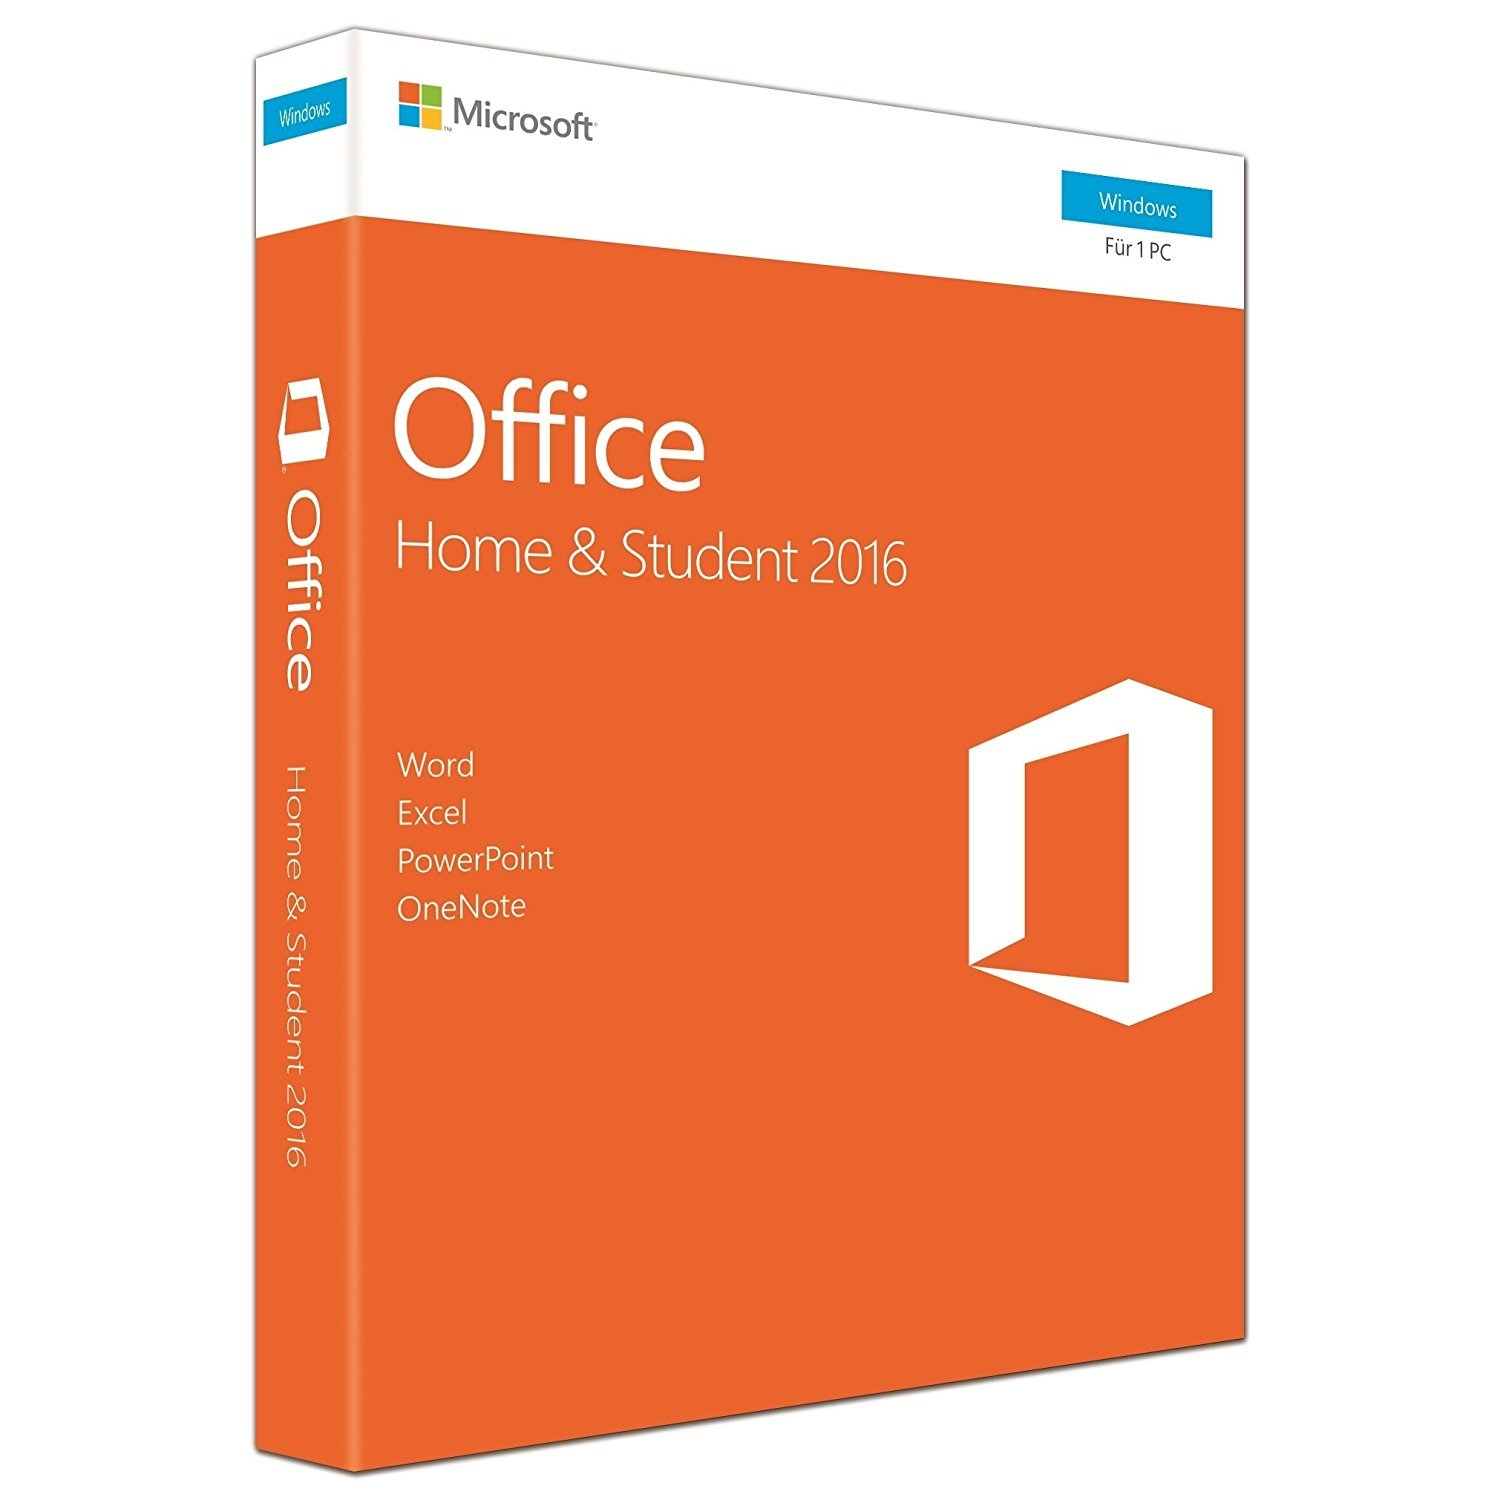 Microsoft server 2012 r2 standard 64 bit license amp dvd media - Microsoft Office Home And Student 2016 For 1 Windows Pc Voucher Amazon In Software